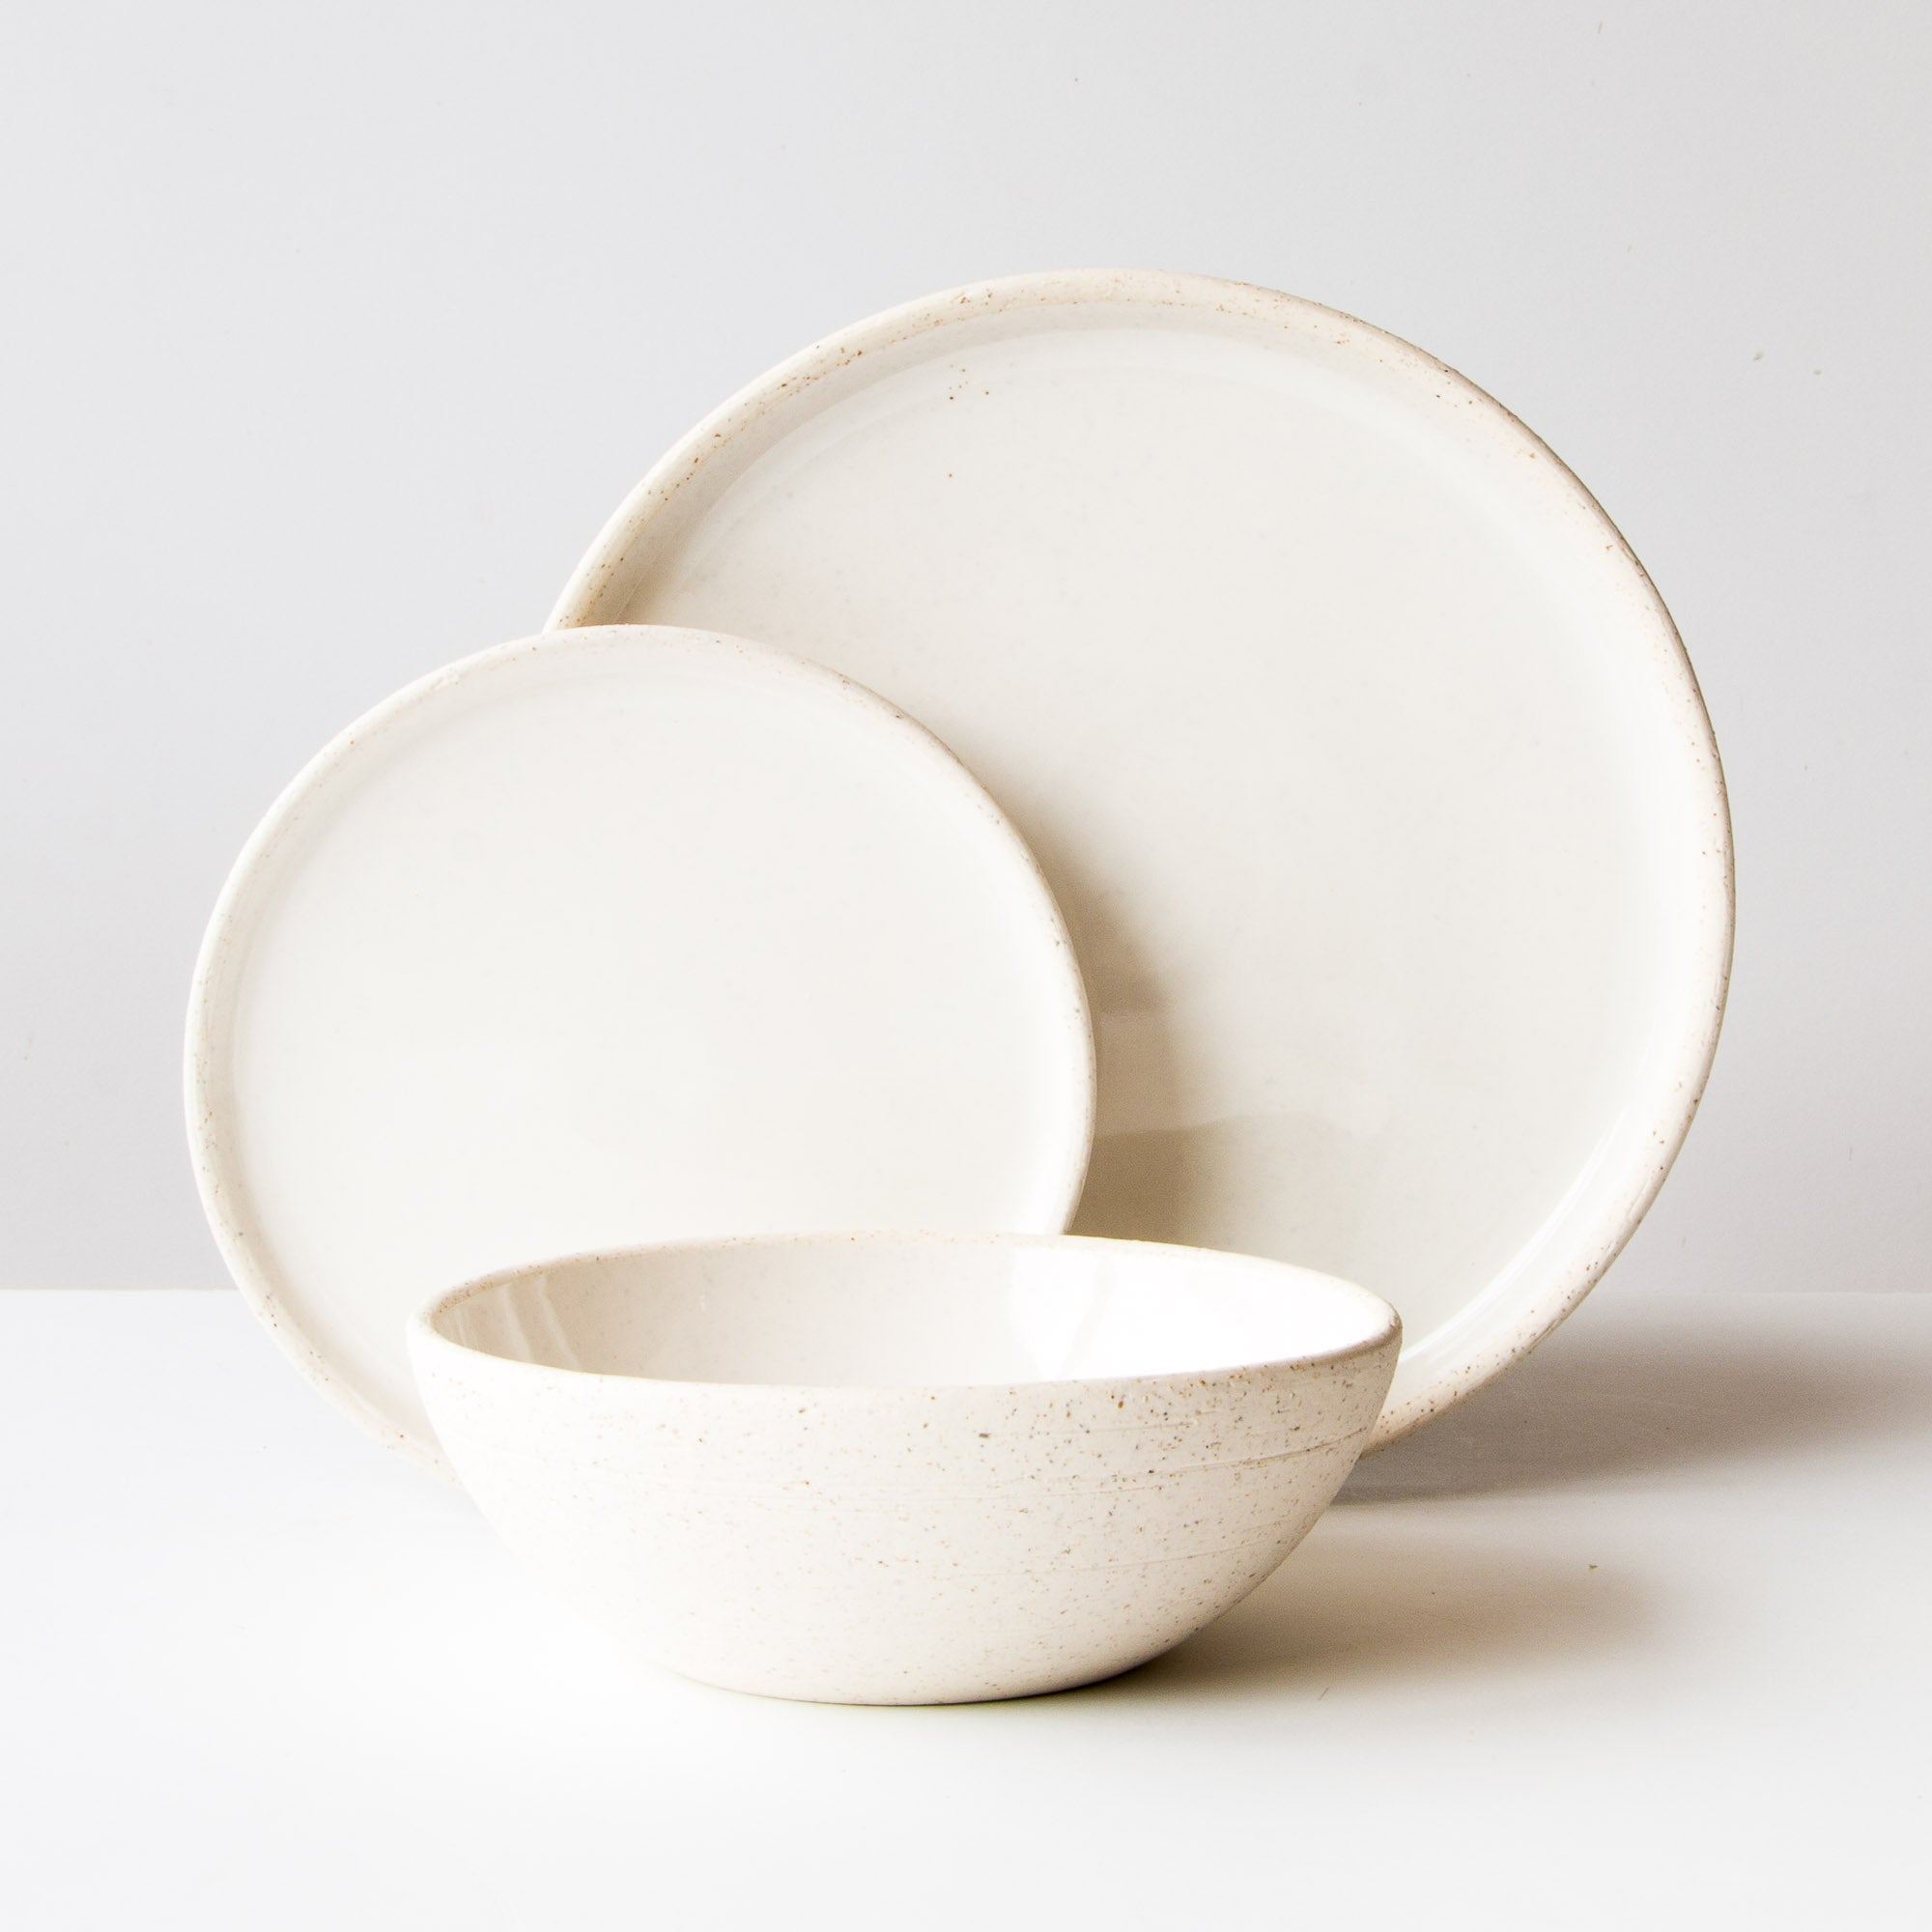 Oatmeal Clay 3-Piece Handmade Pottery Dinnerware Set - Sold by Chic & Basta